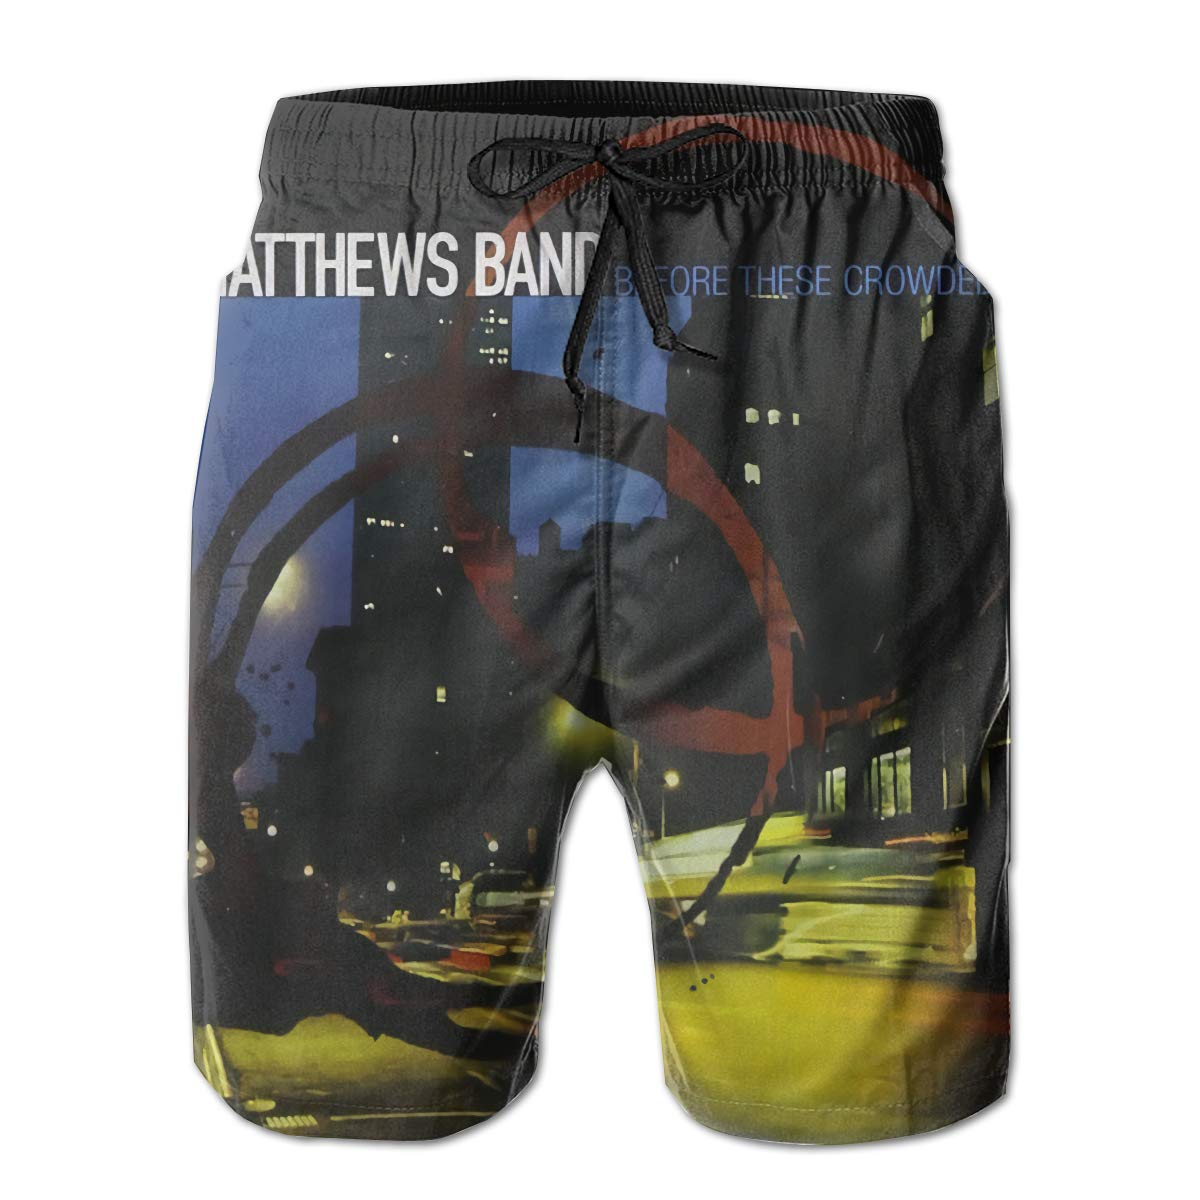 Robert R Castleberry Dave Matthews Before These Crowded Streets Mens Summer Beach Shorts Surfing Pants